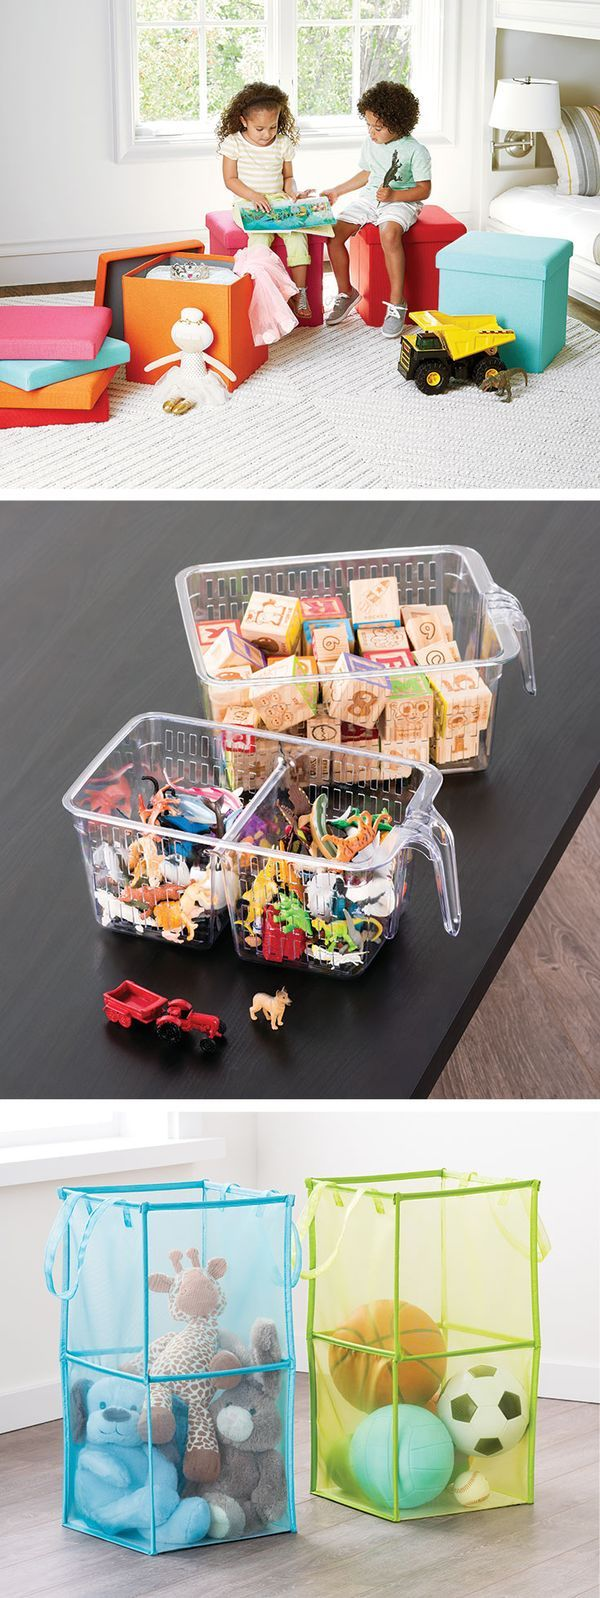 Toy Storage Is Childu0027s Play With Poppin Box Seats, Handled Baskets And Our  Double Folding